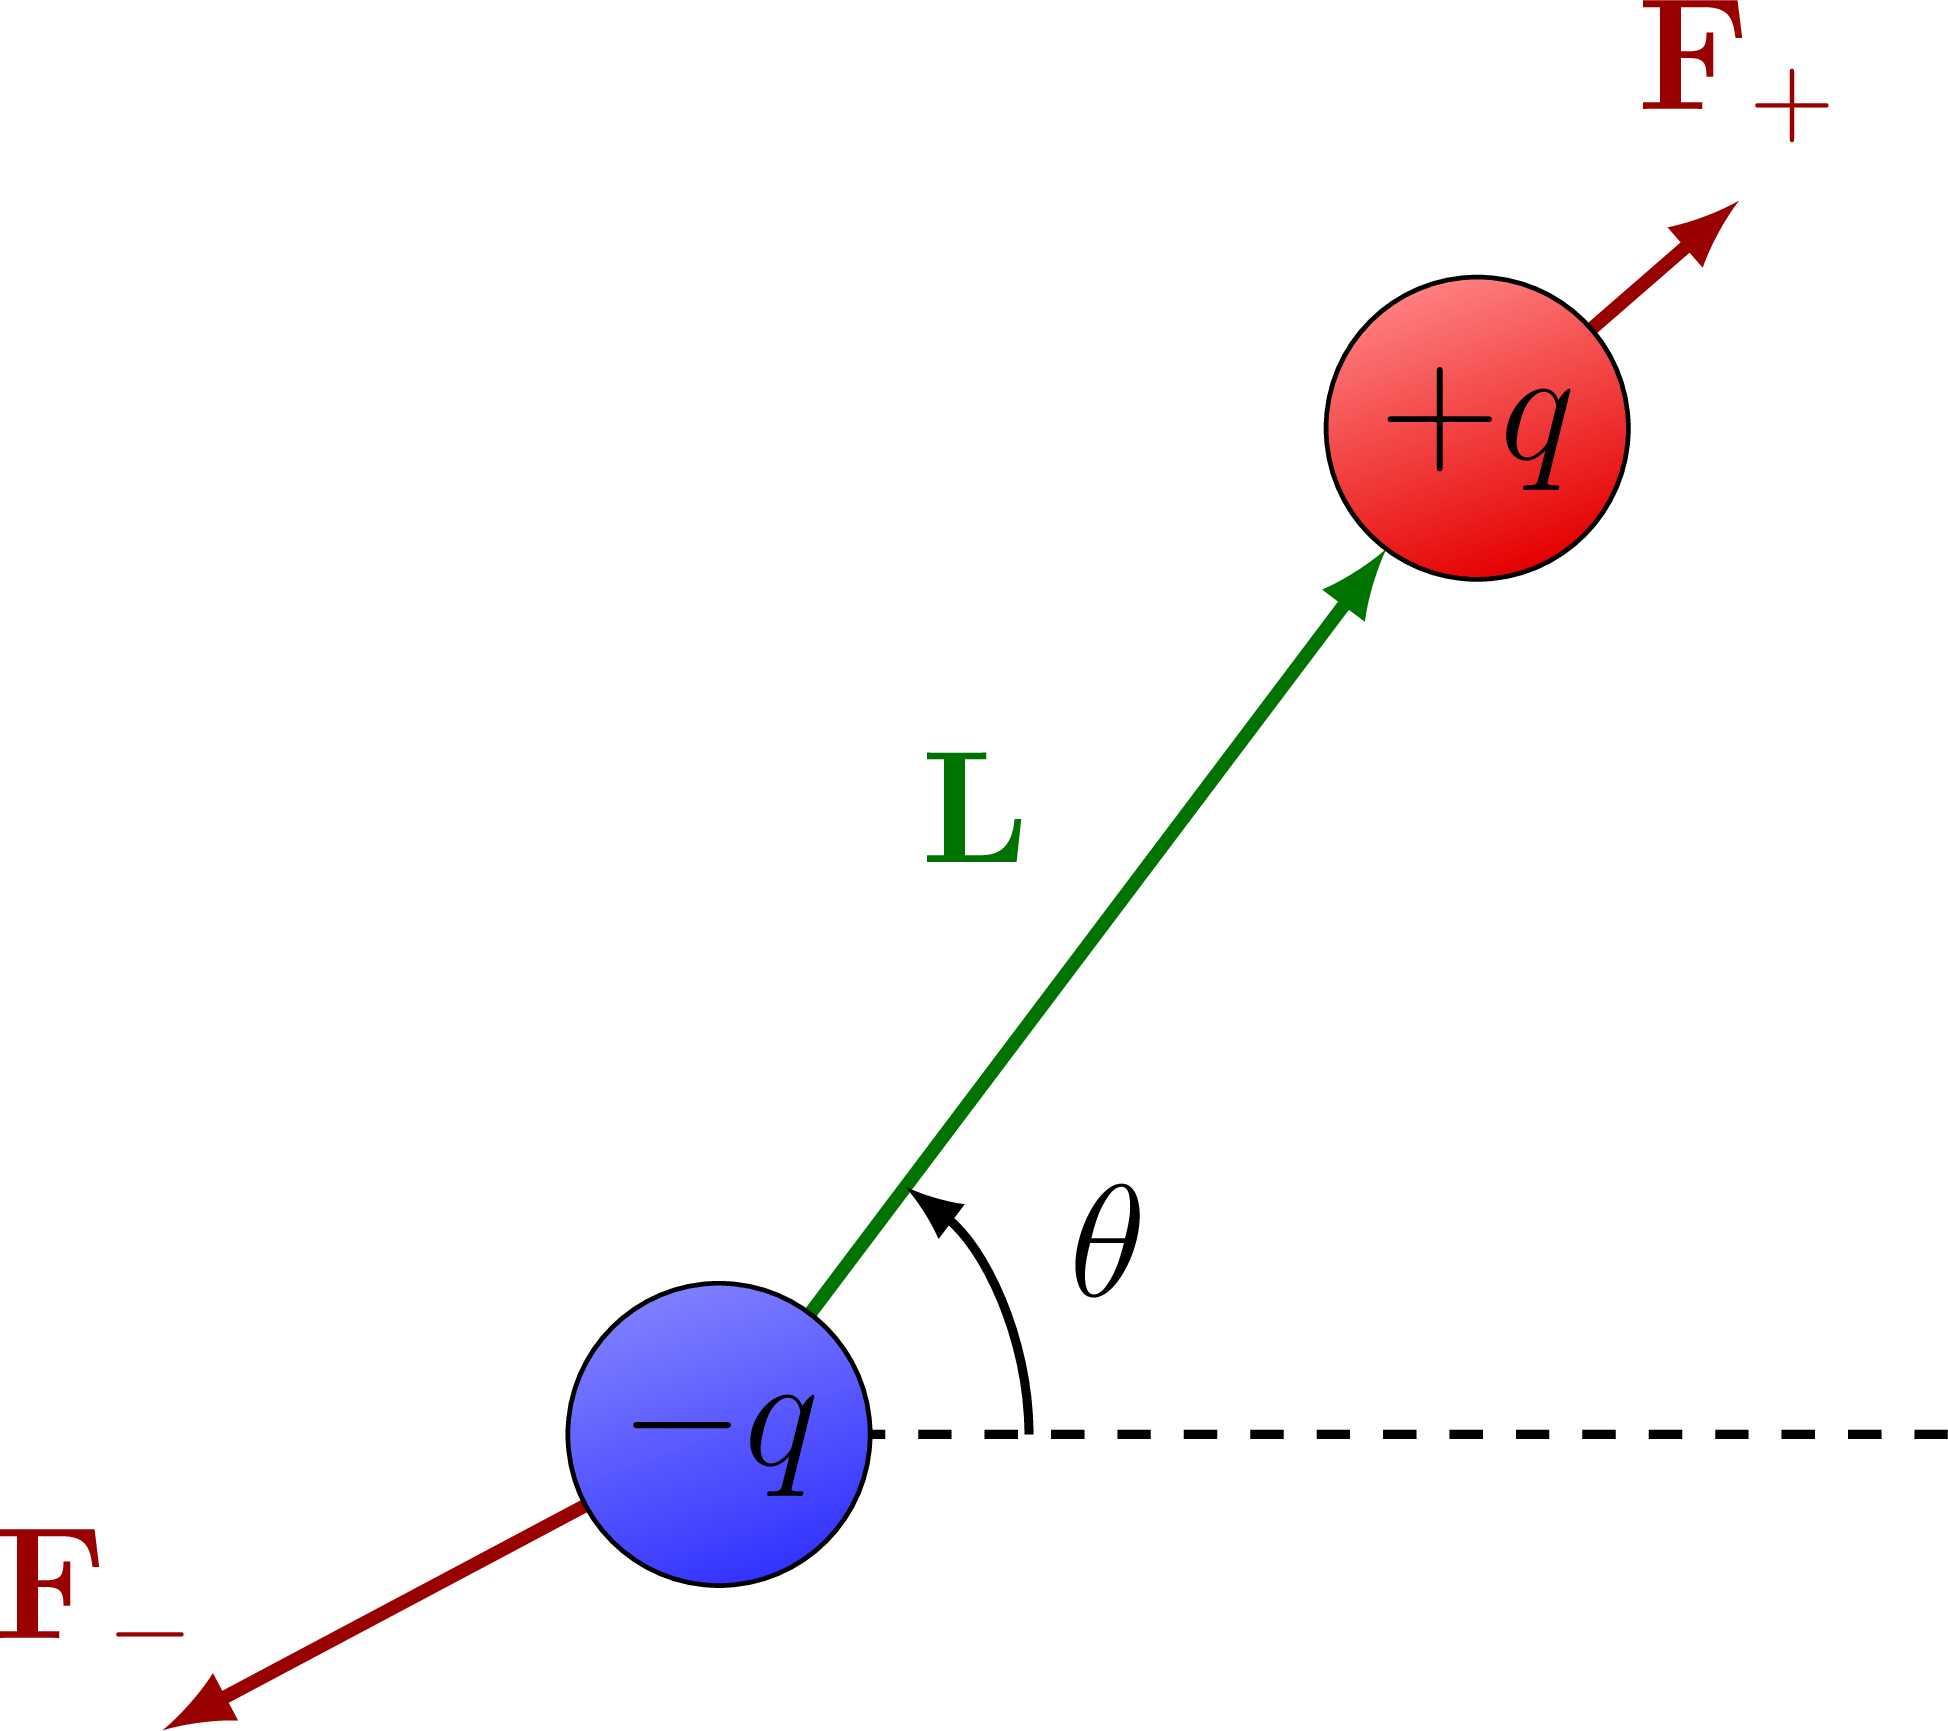 electric_dipole-006.png